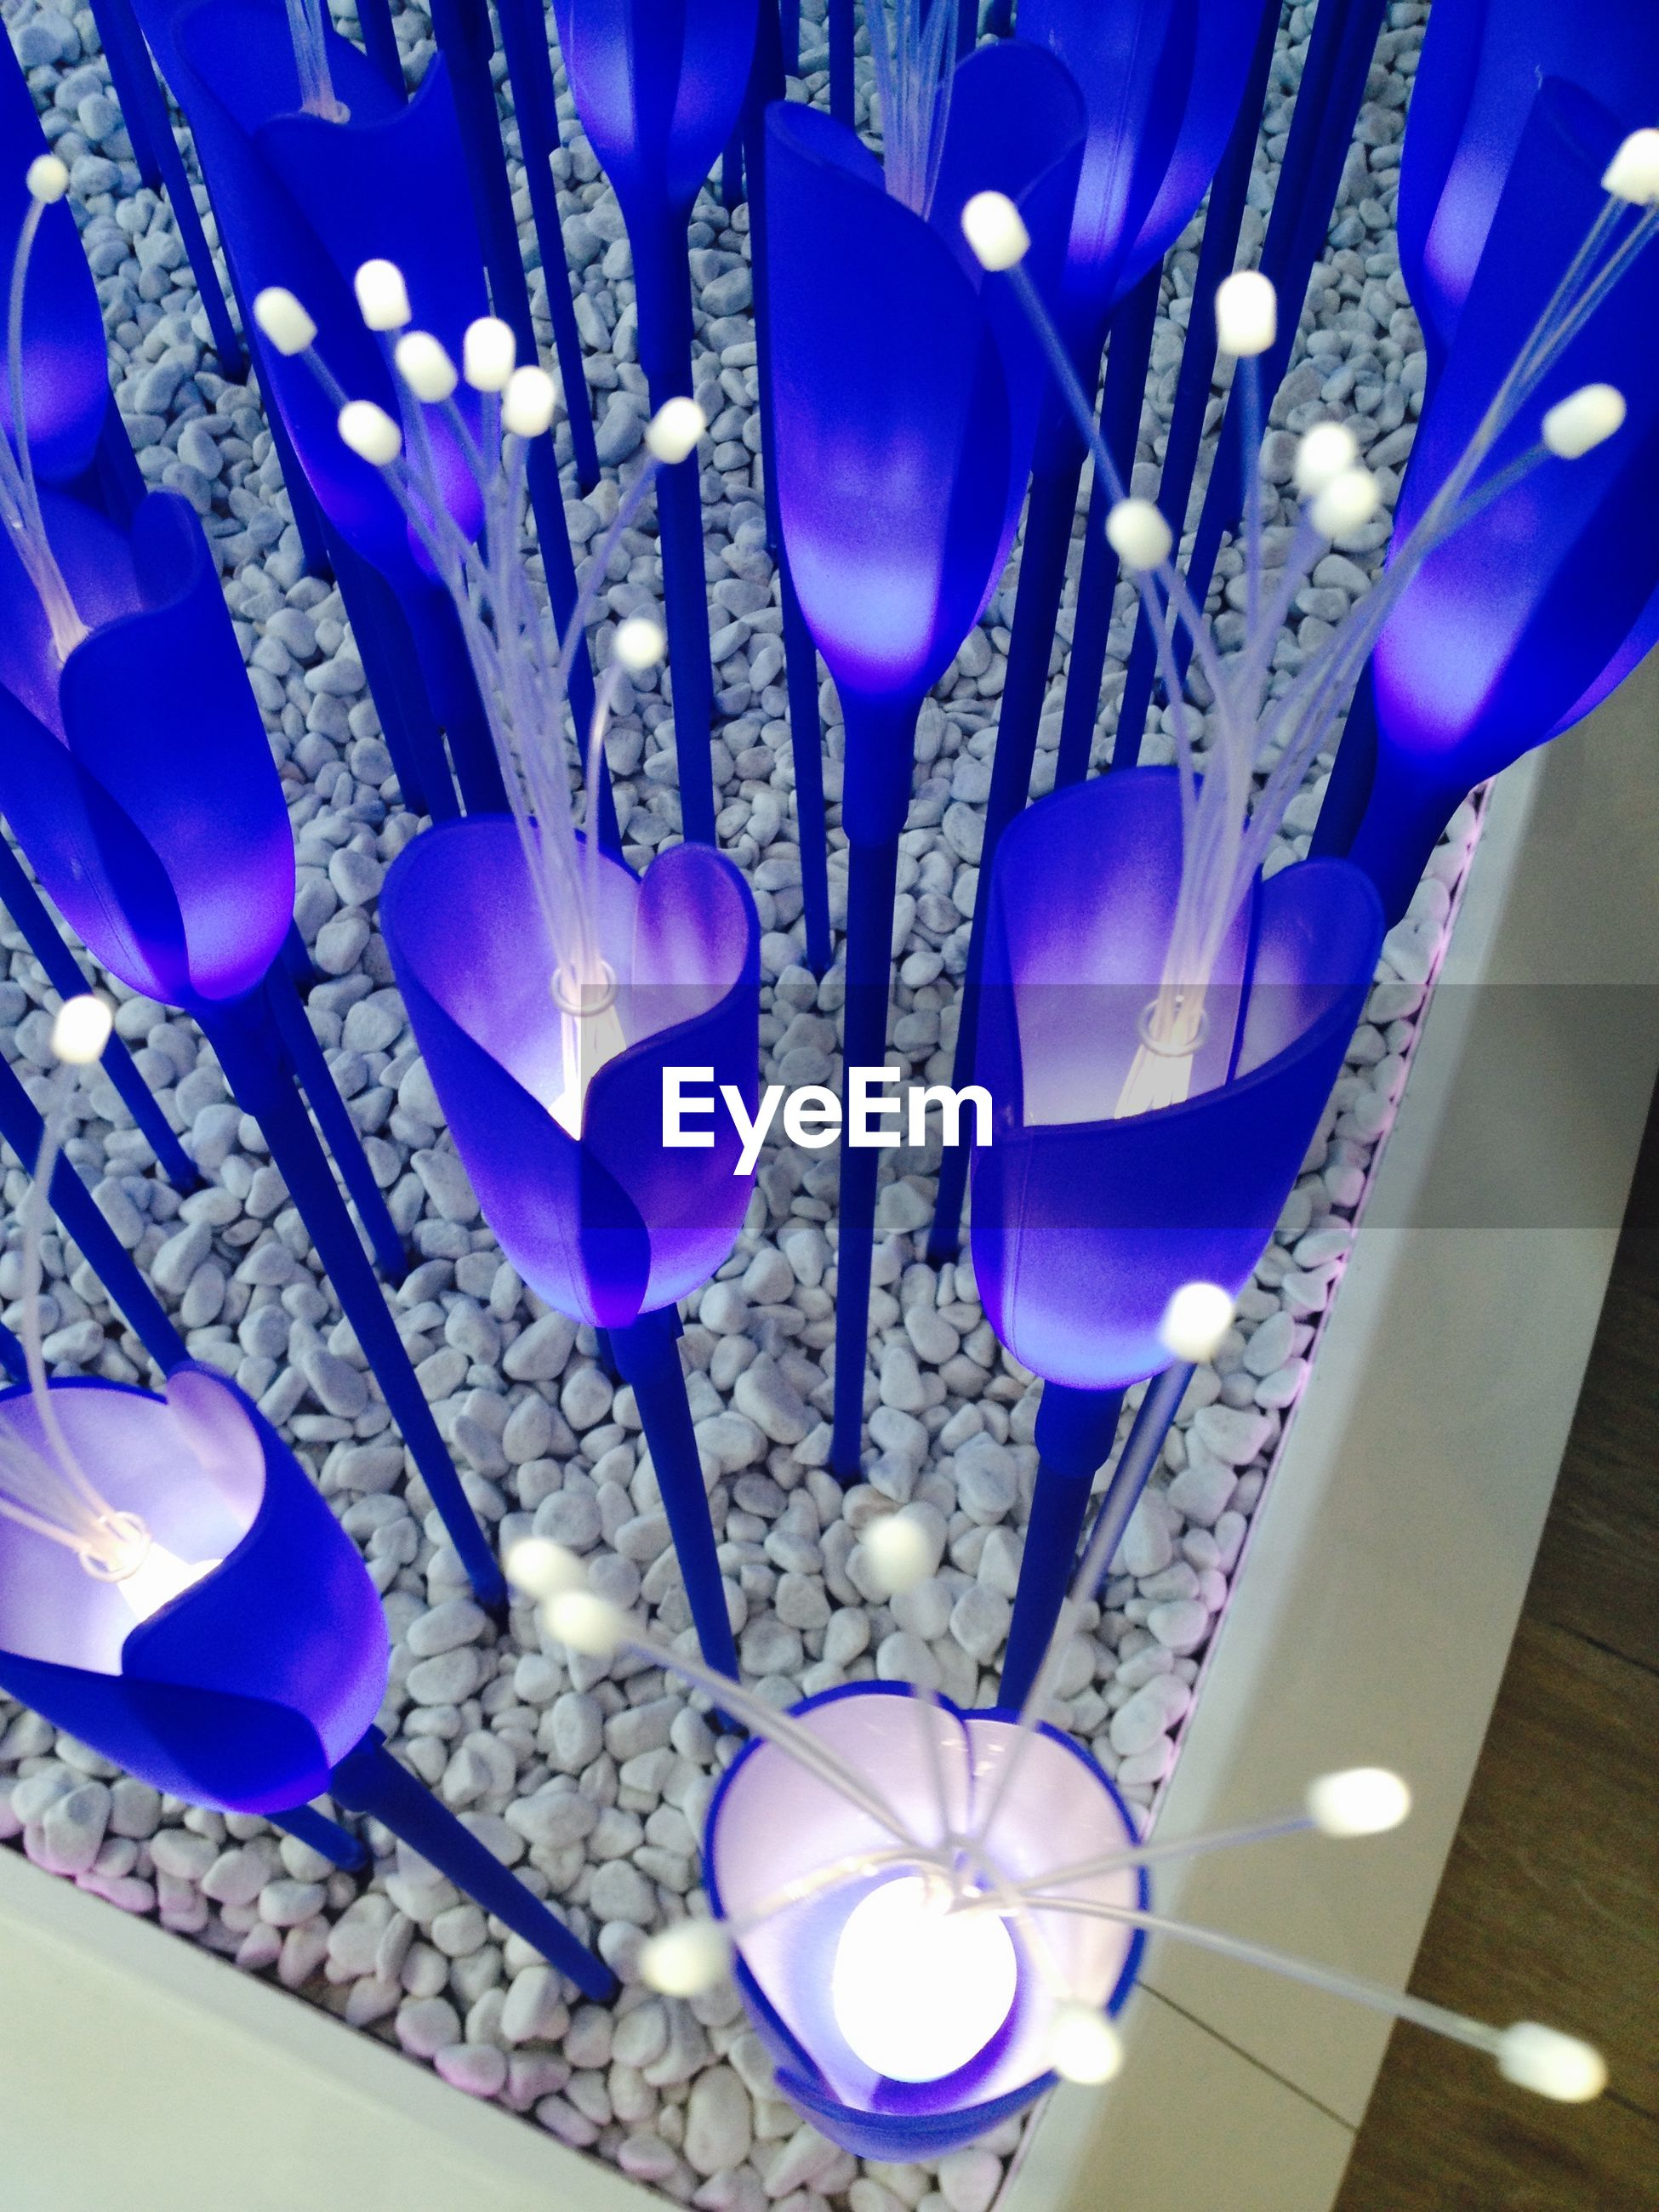 indoors, hanging, flower, blue, purple, variation, decoration, close-up, still life, large group of objects, lighting equipment, fragility, no people, multi colored, arrangement, illuminated, abundance, high angle view, electricity, vase